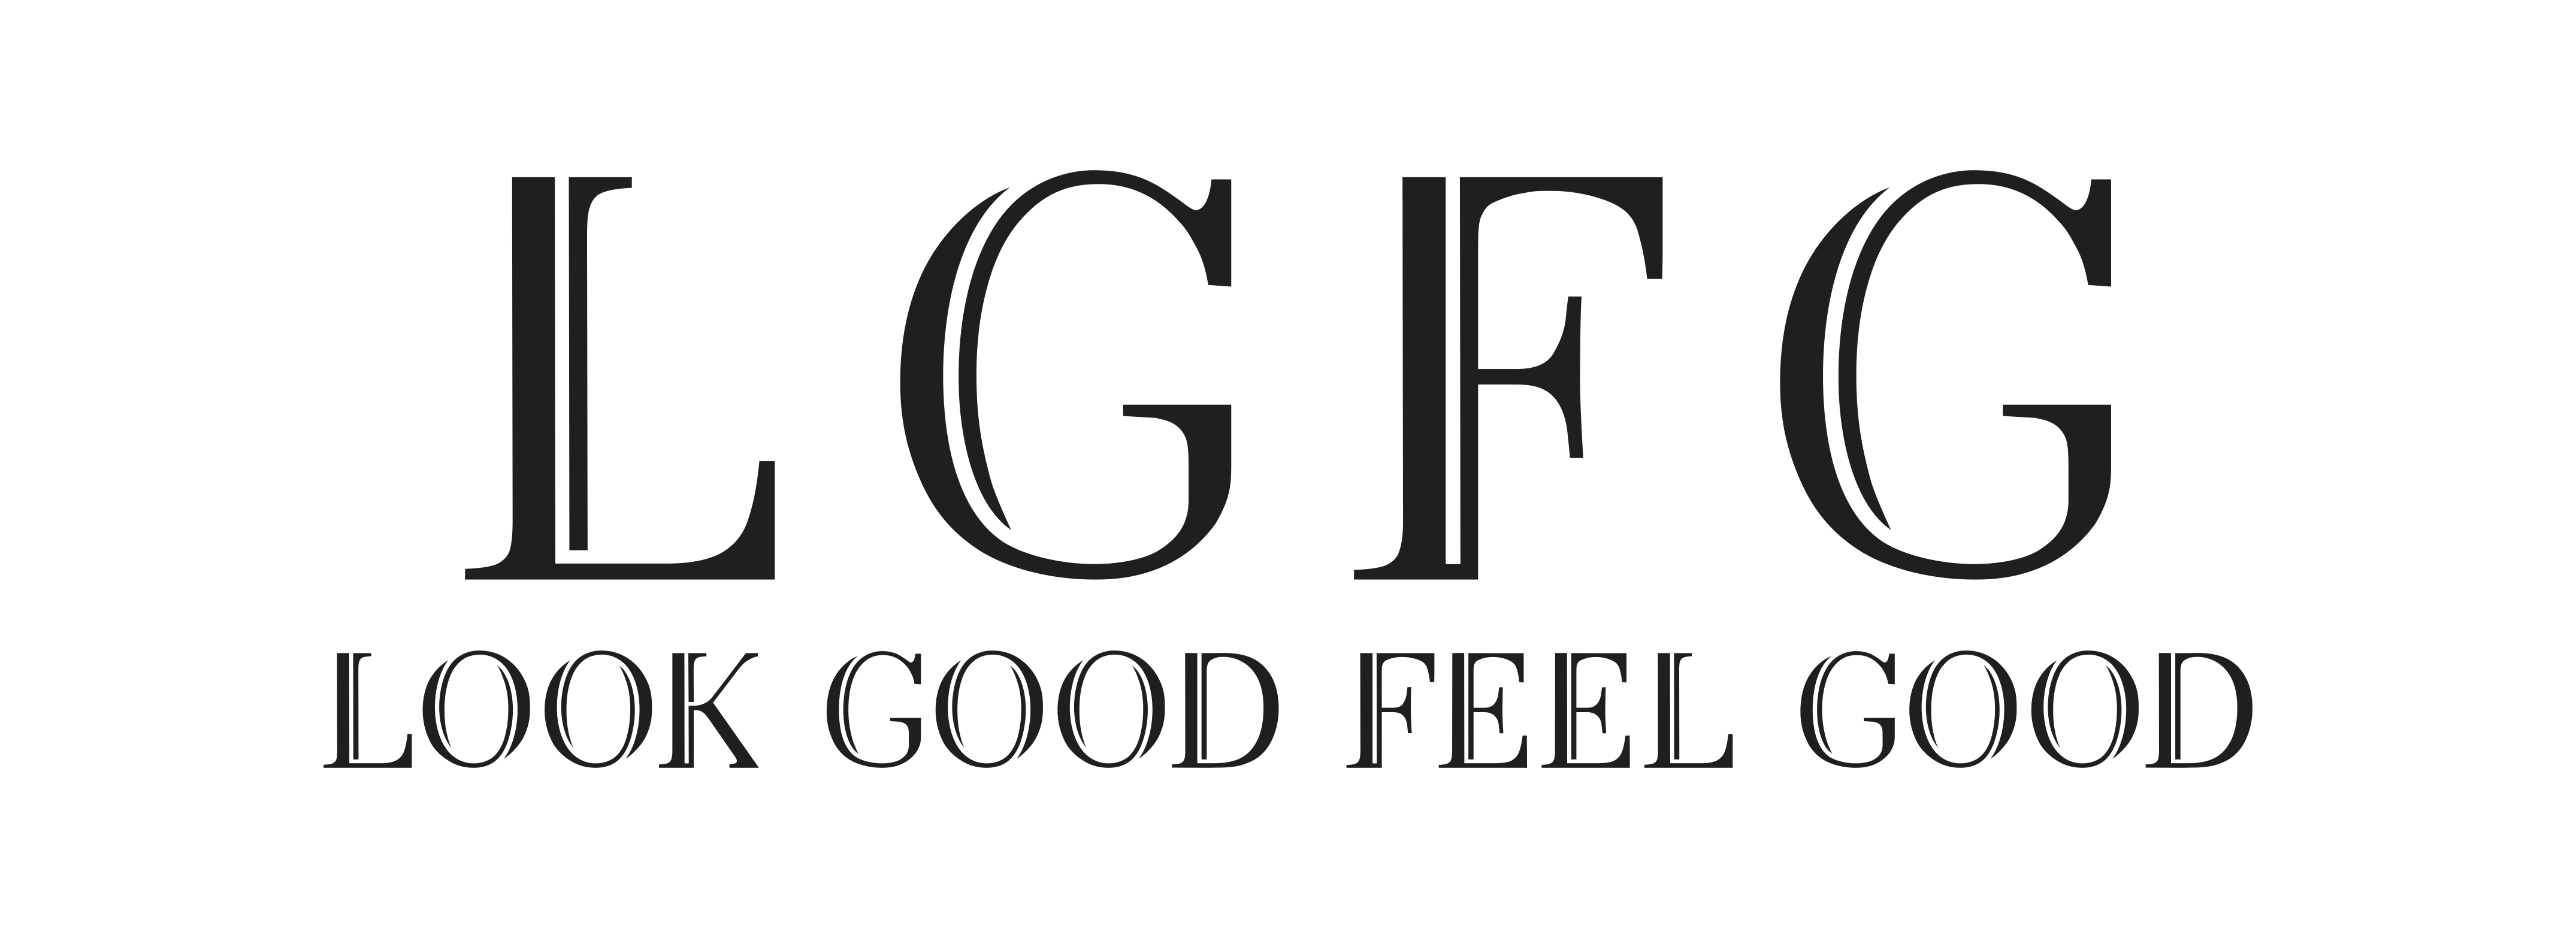 Look Good Feel Good luxury wholesale mens and womens fashion